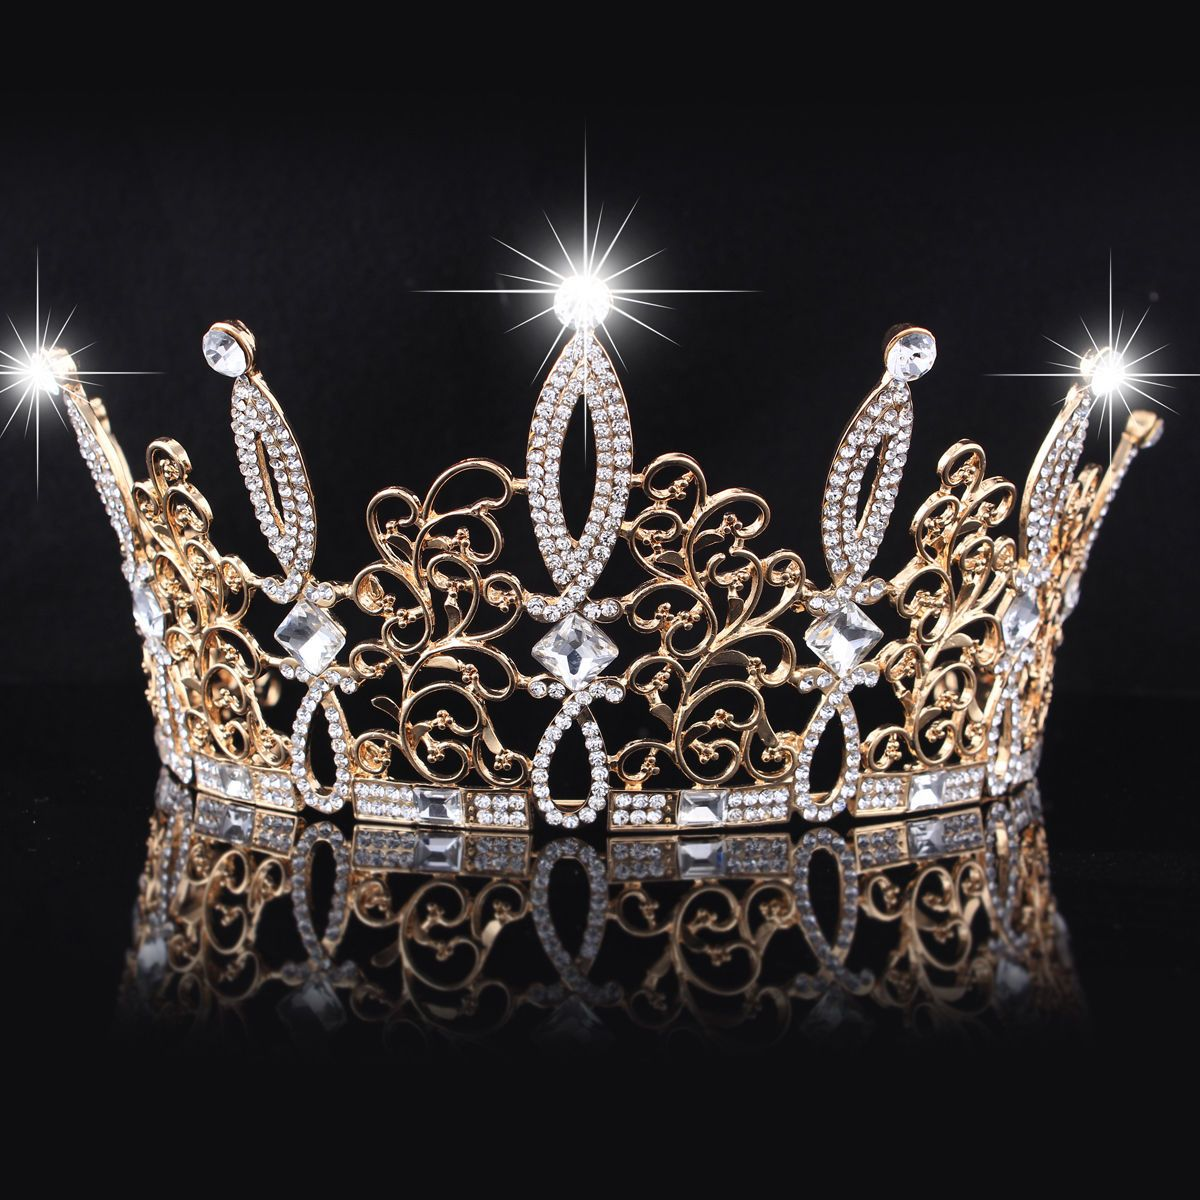 Bridal jewelry tiara - Details About New Tiara Gold Plated Women Vintage Crown Rhinestone Crystal Bridal Jewelry